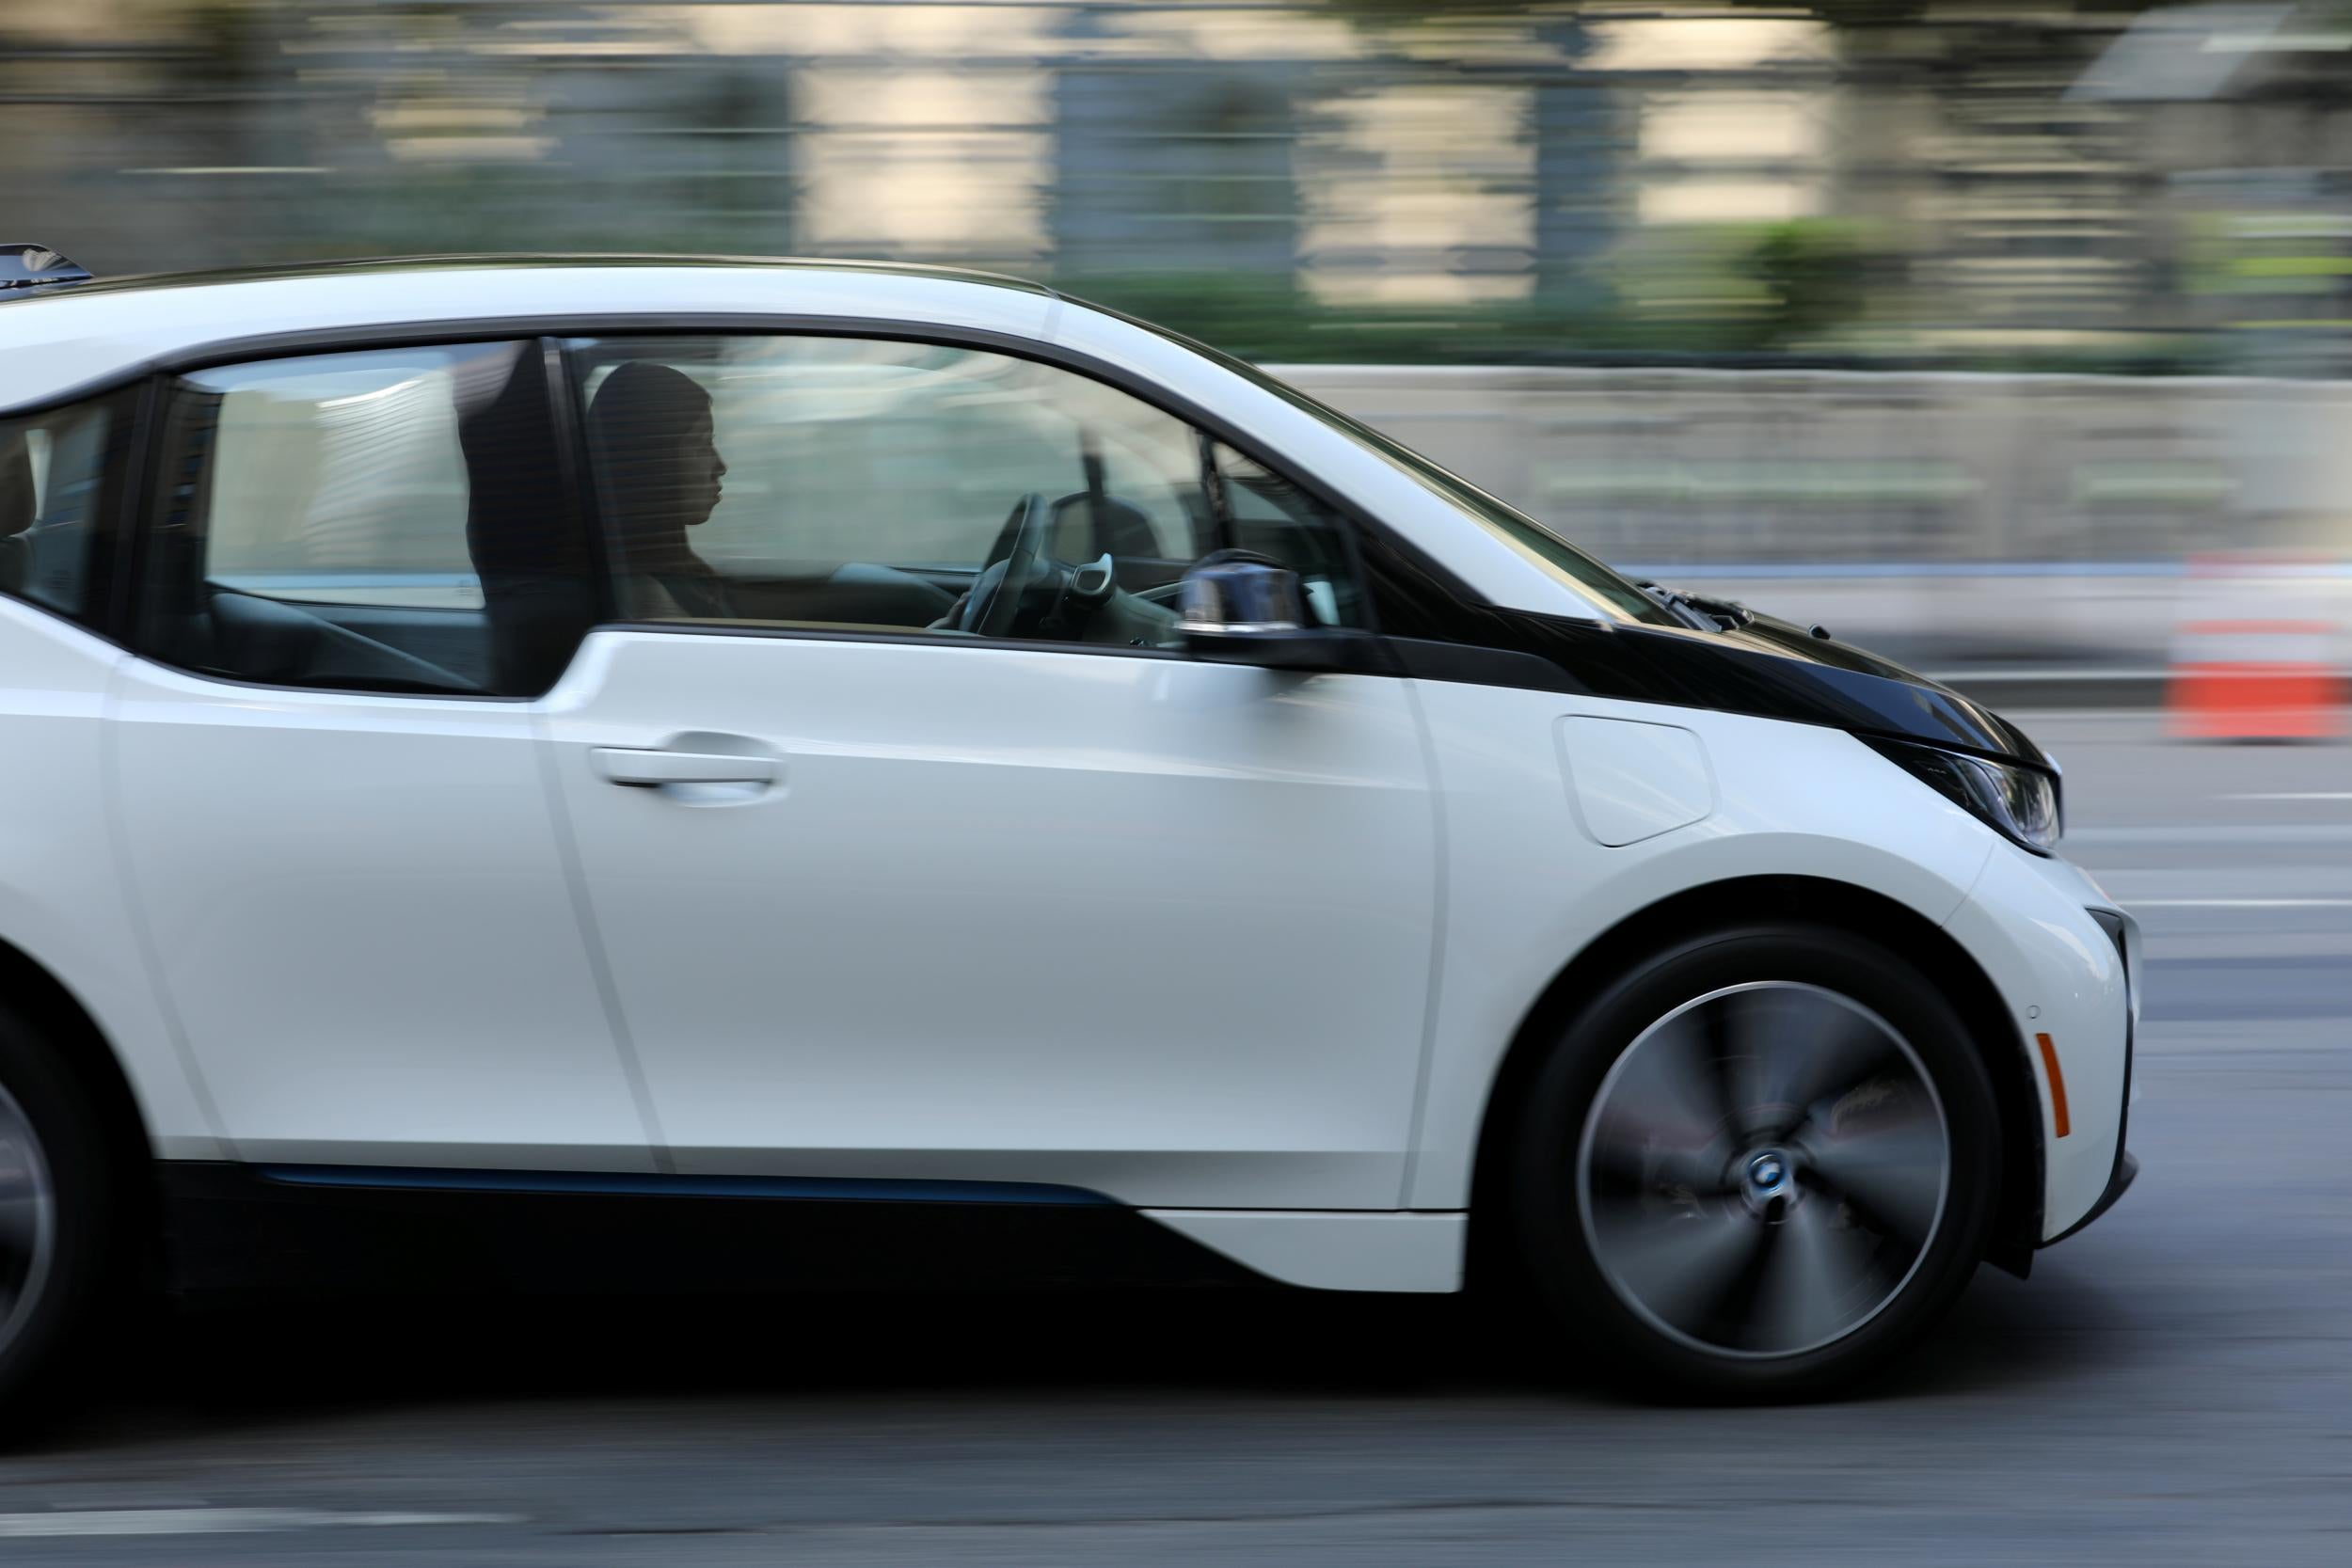 electric cars - latest news, breaking stories and comment - the